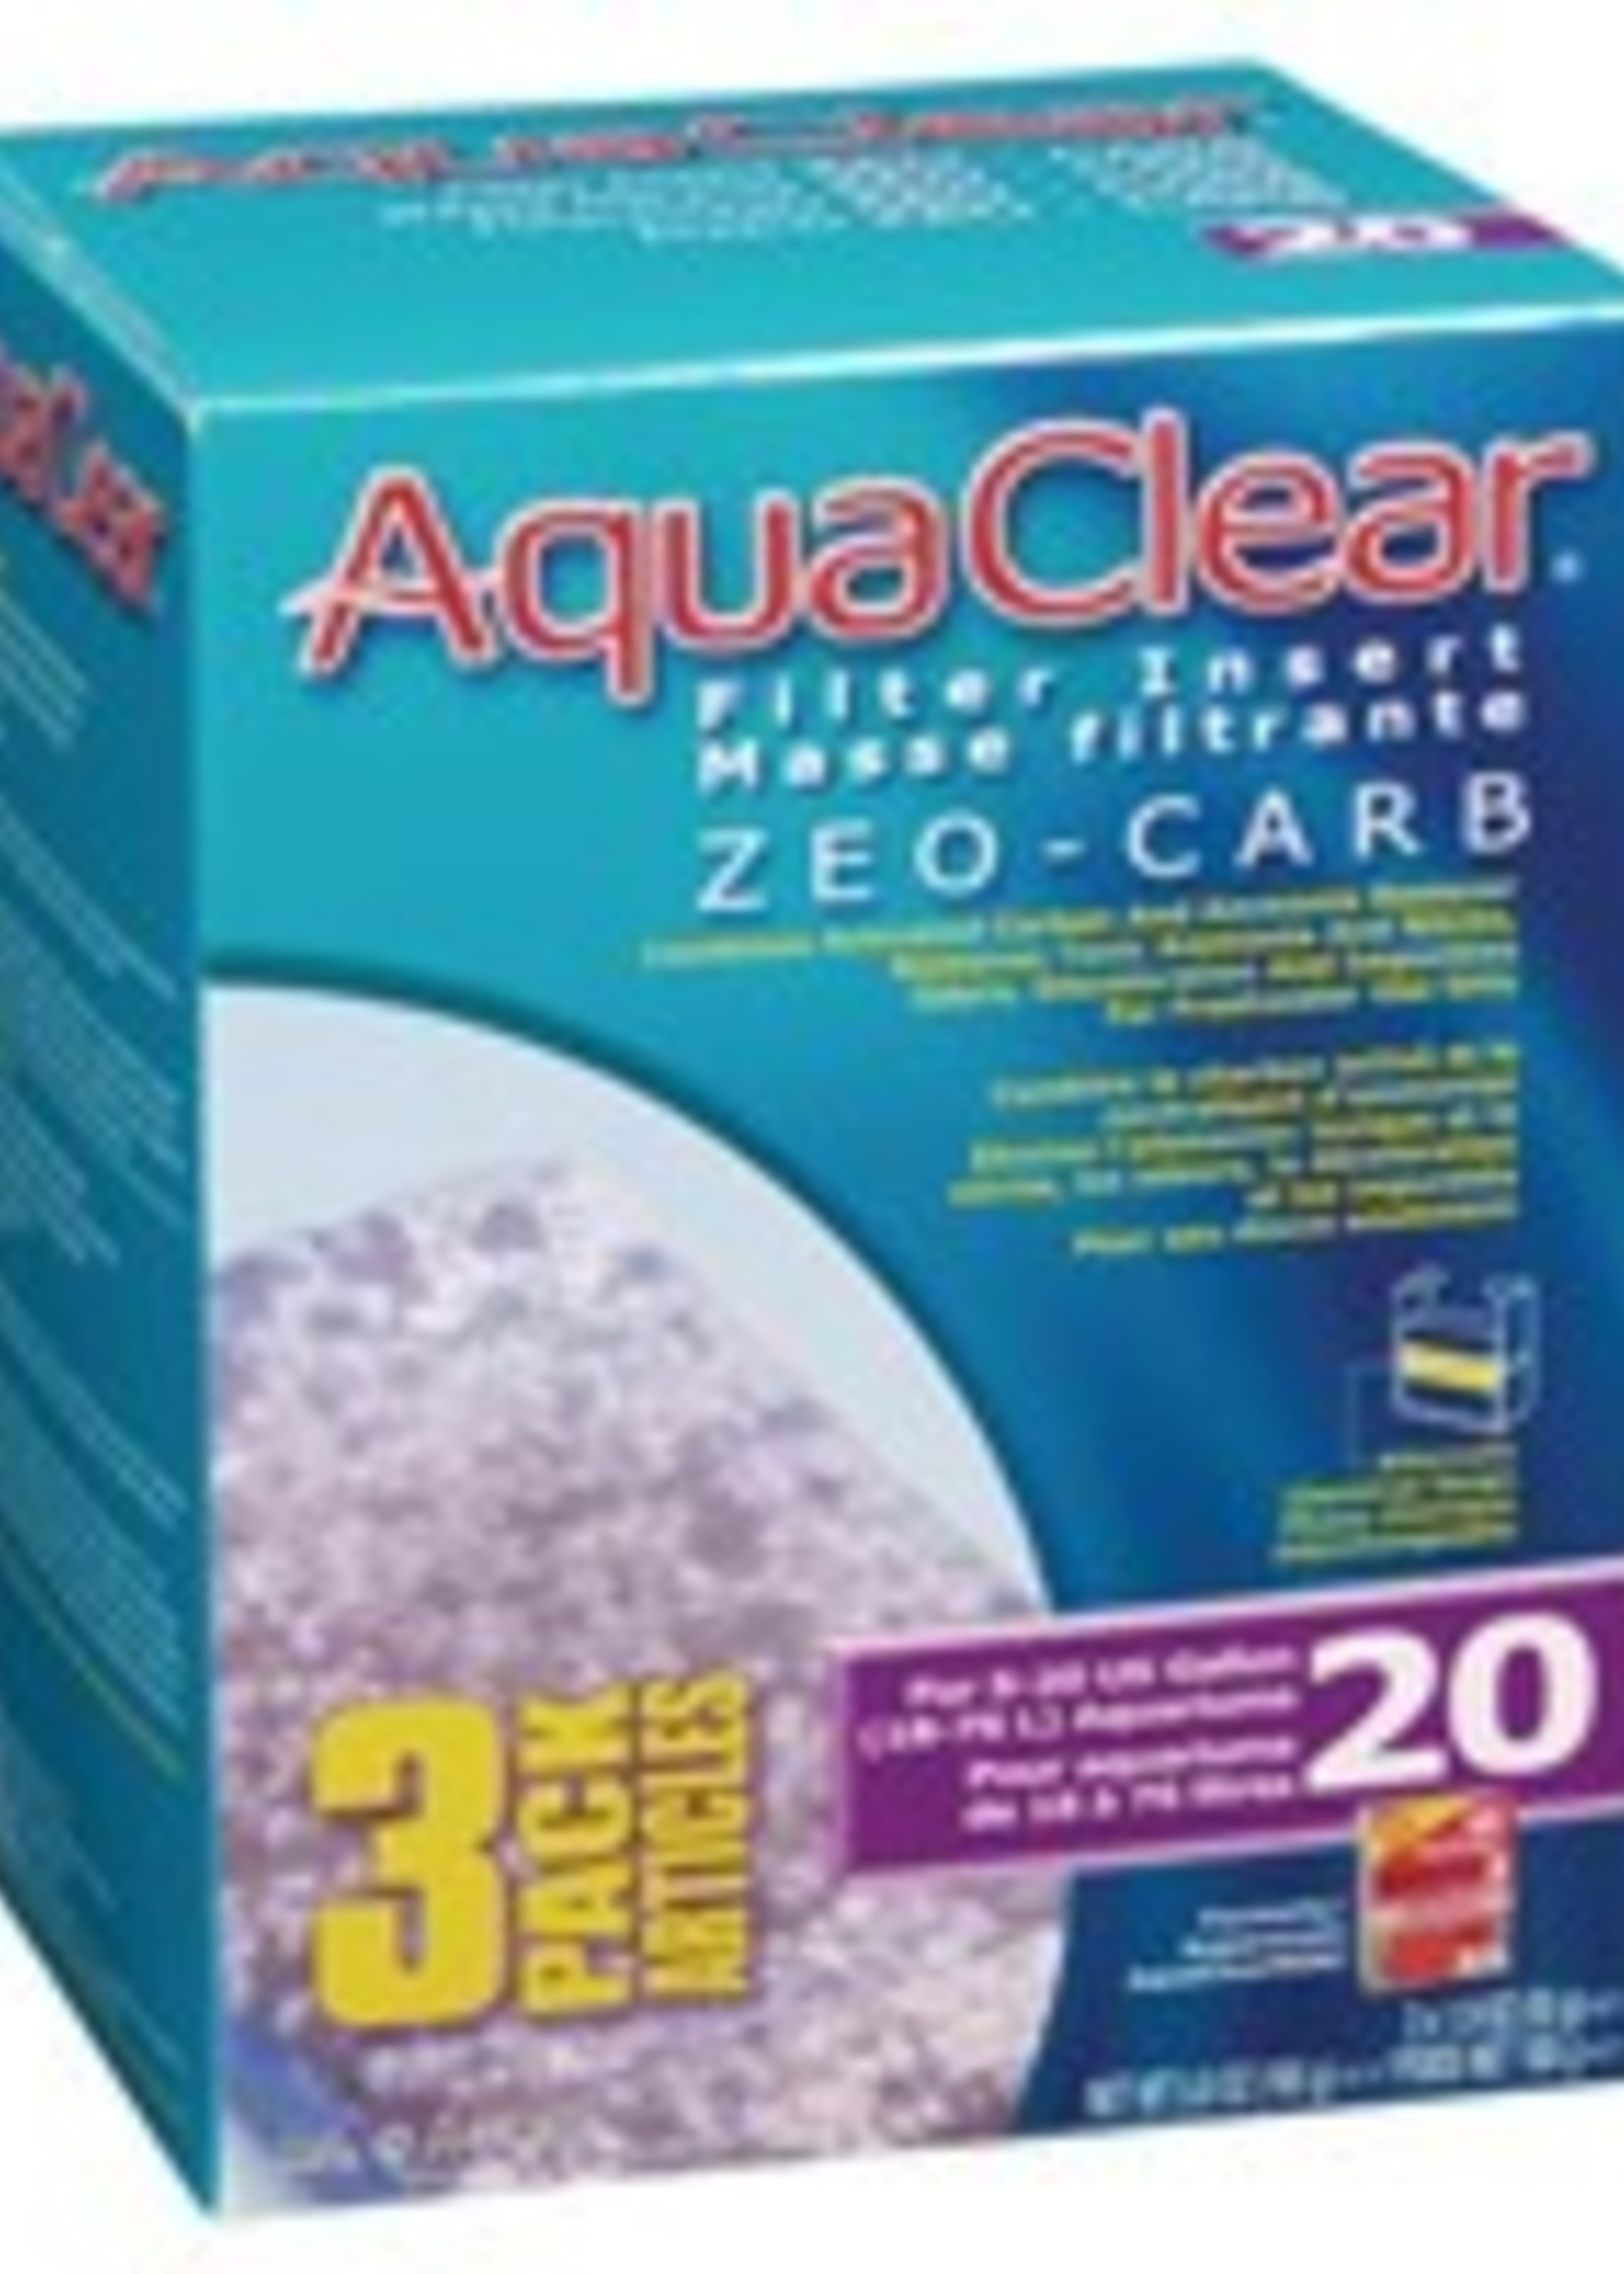 AquaClear 20 Zeo-Carb Filter insert, 3 pack, 165 g (5.8 oz )